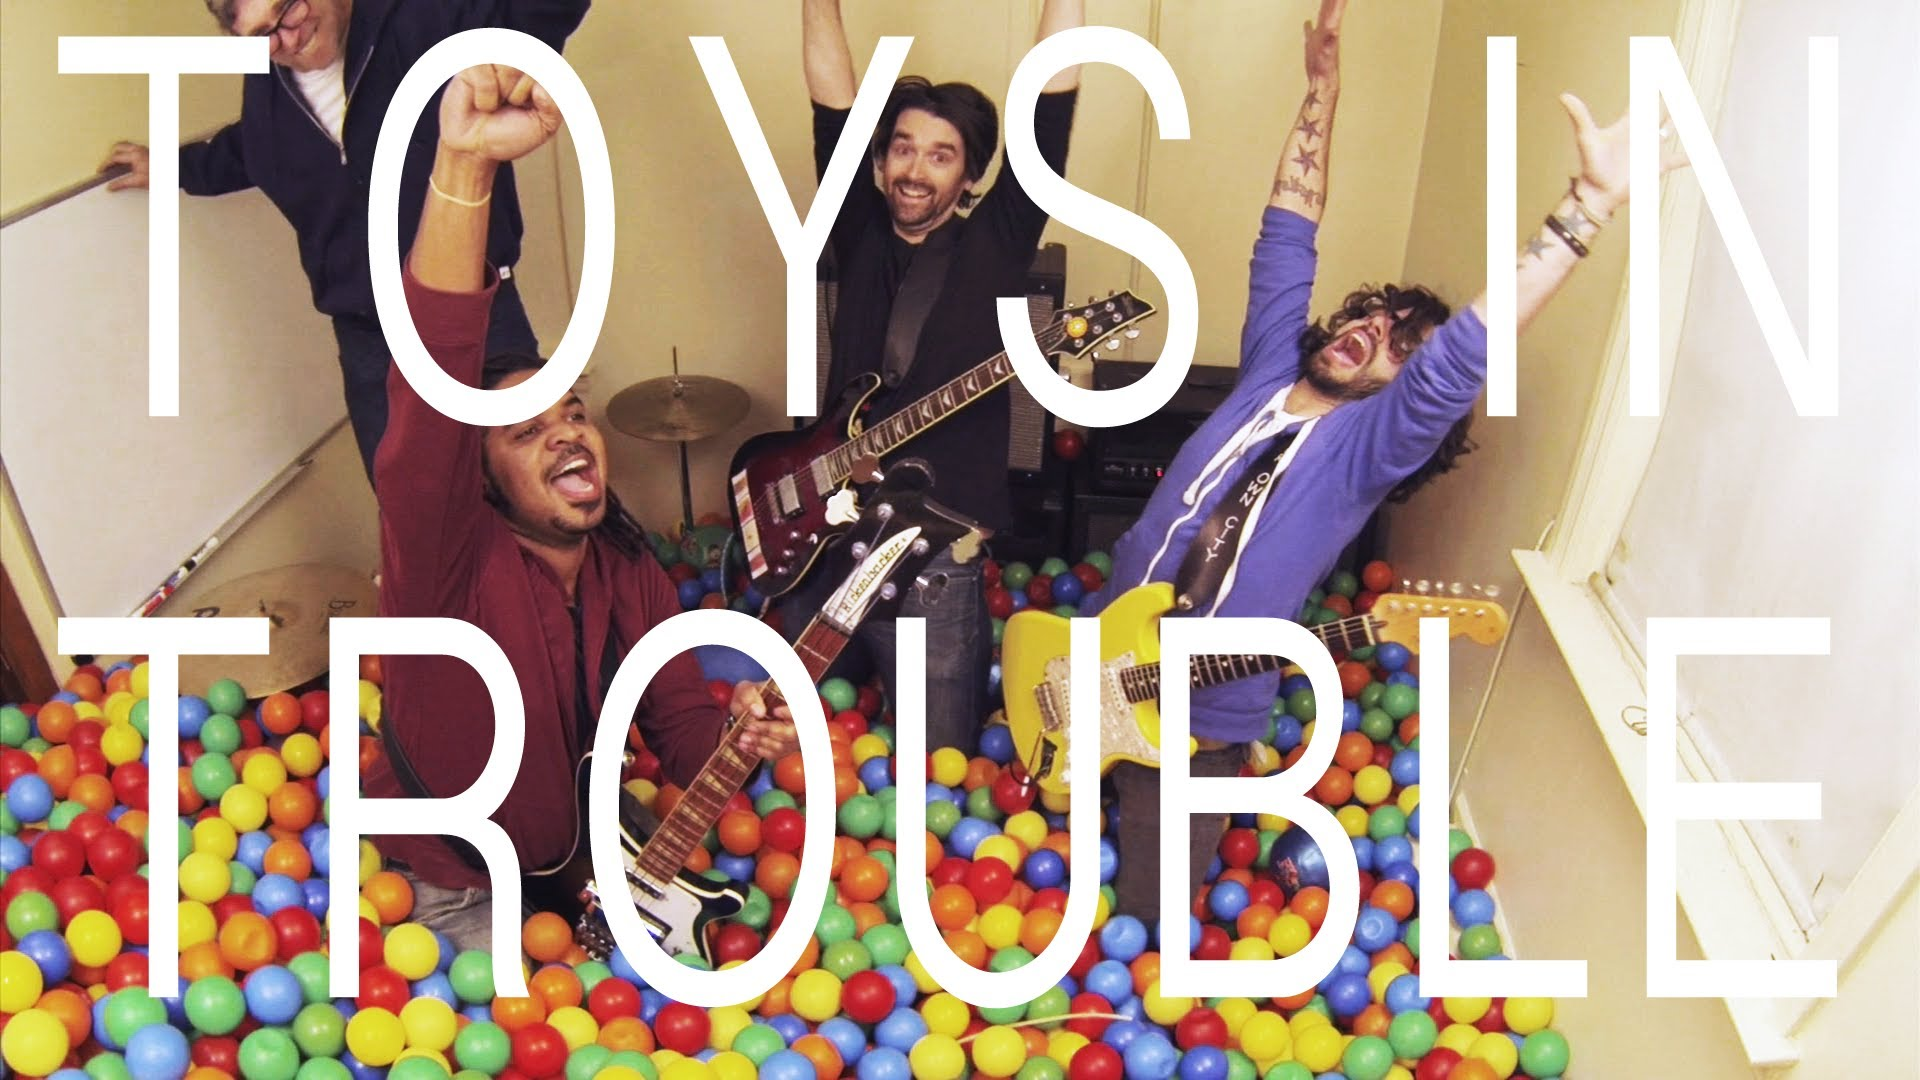 Kevin Bova & Jim Twerell - Members of Toys in Trouble